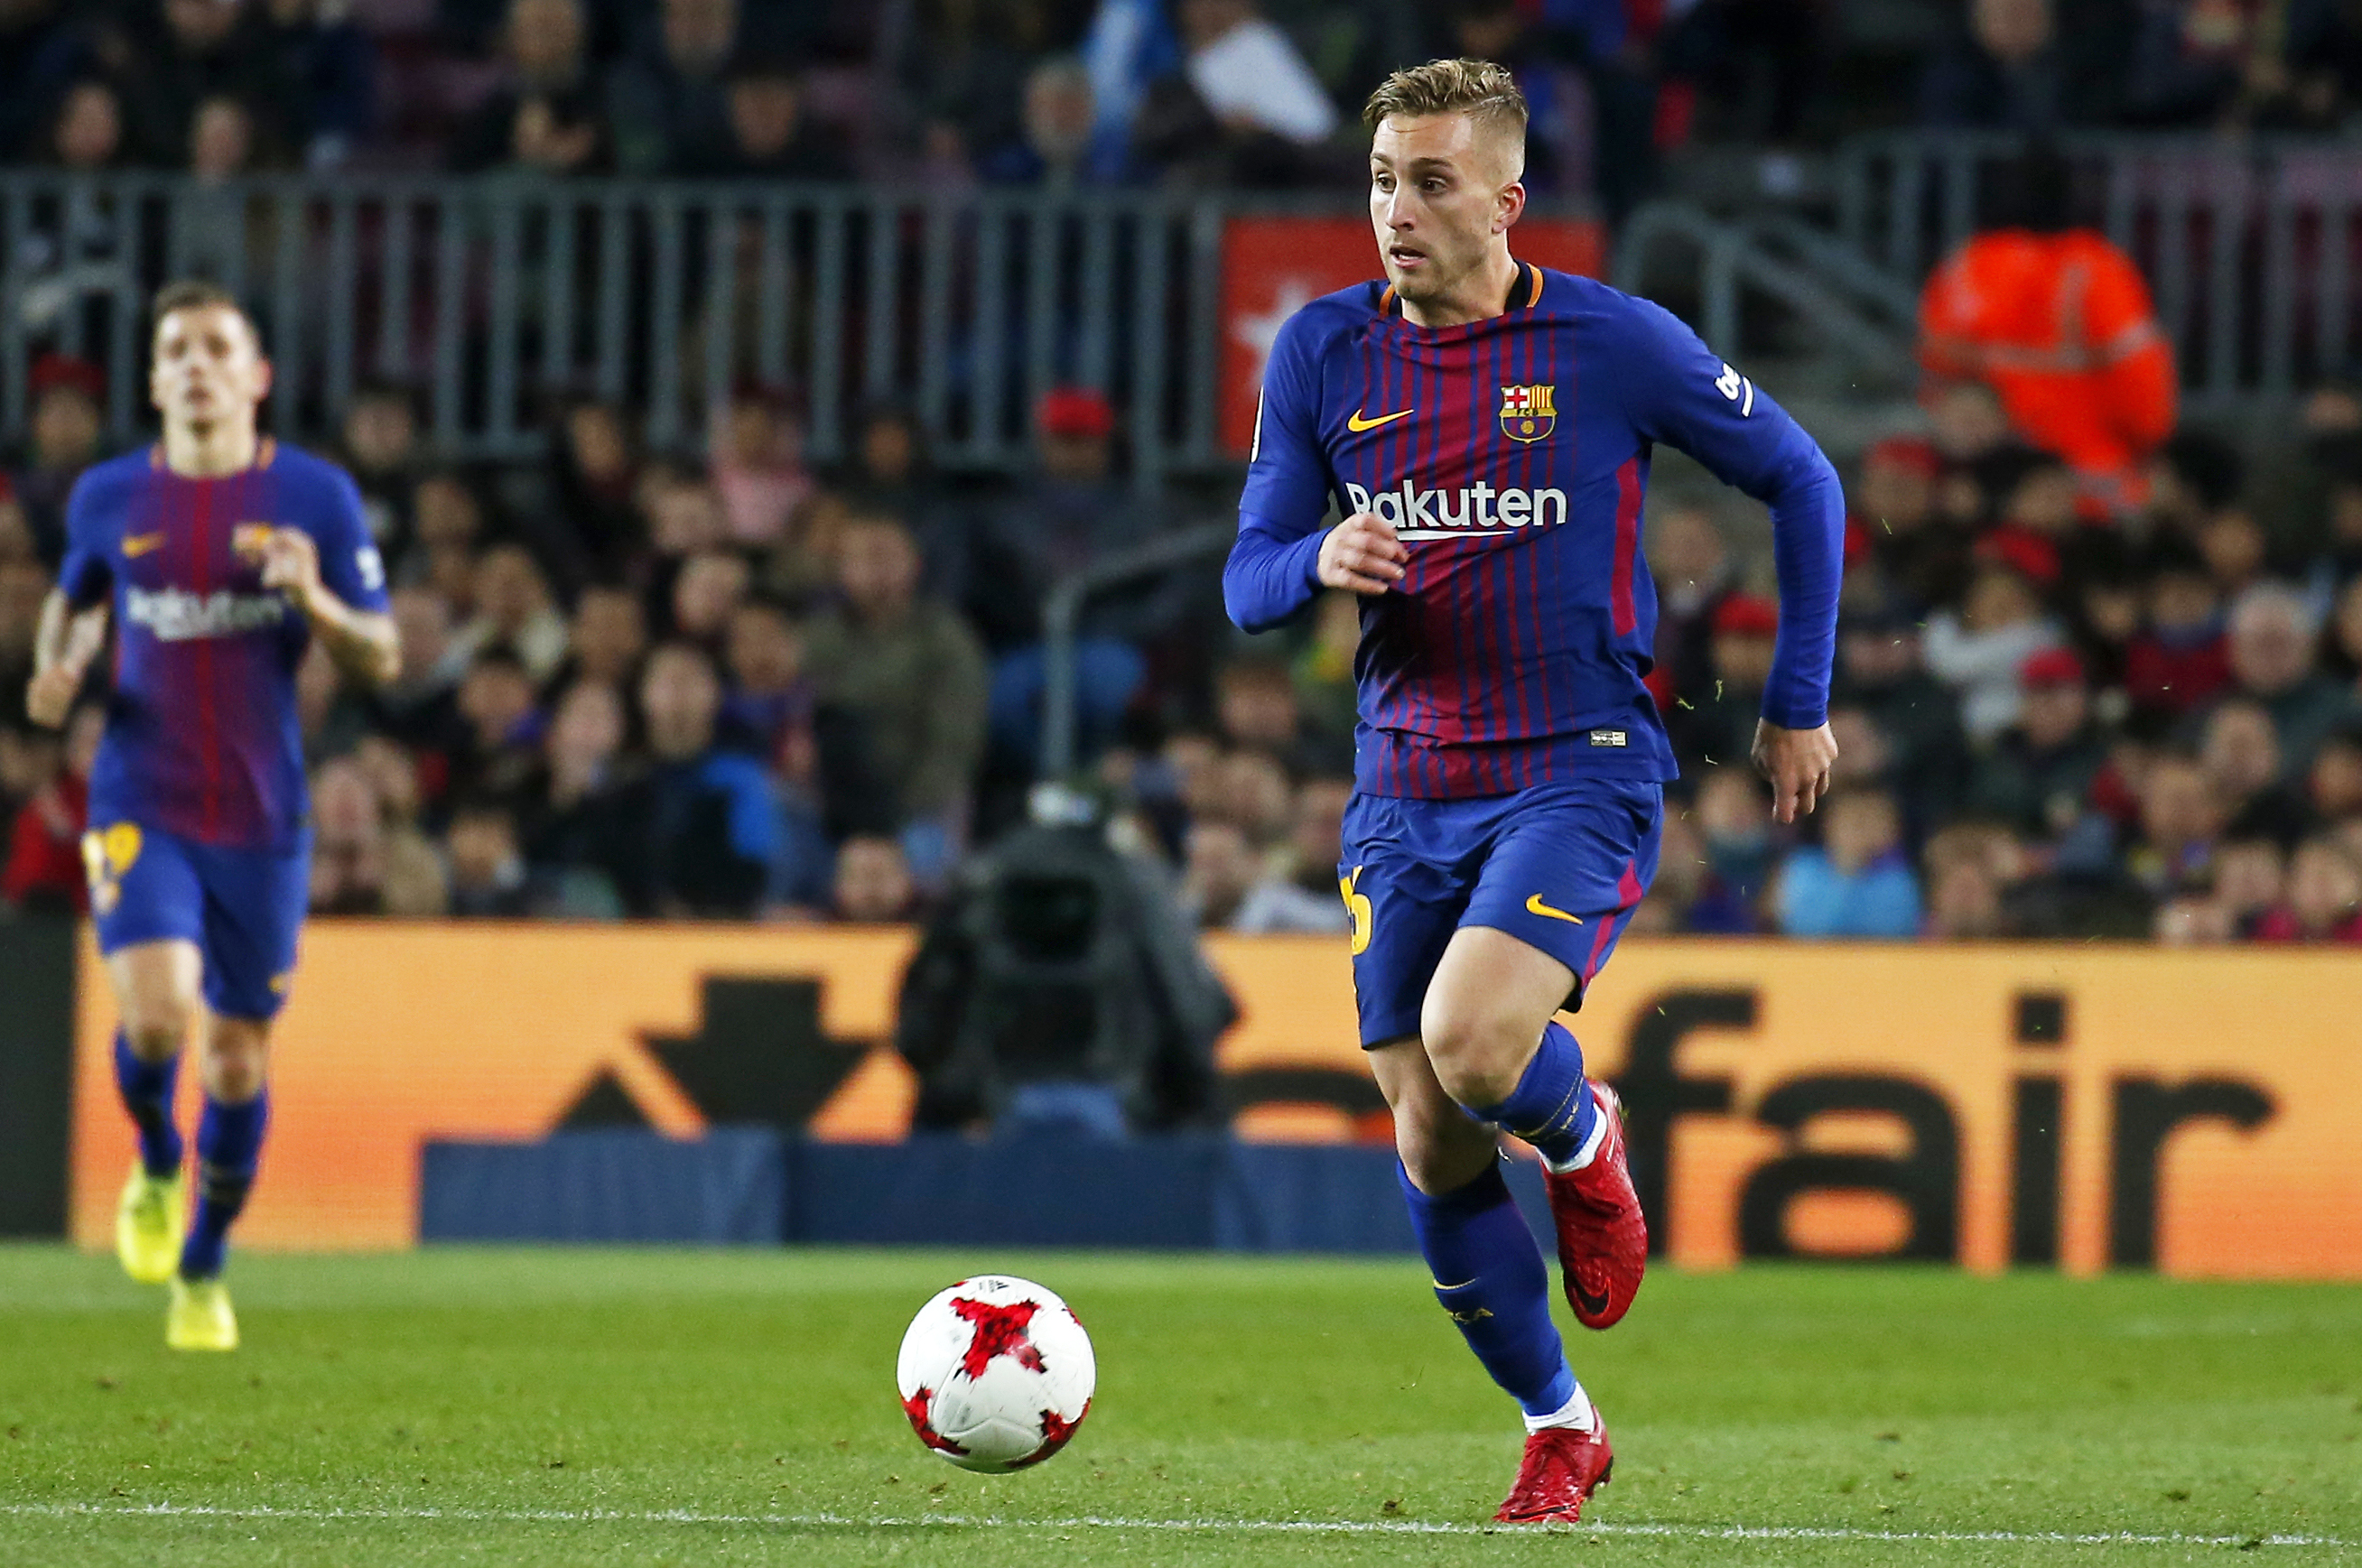 Barcelona send Gerard Deulofeu to Watford on loan